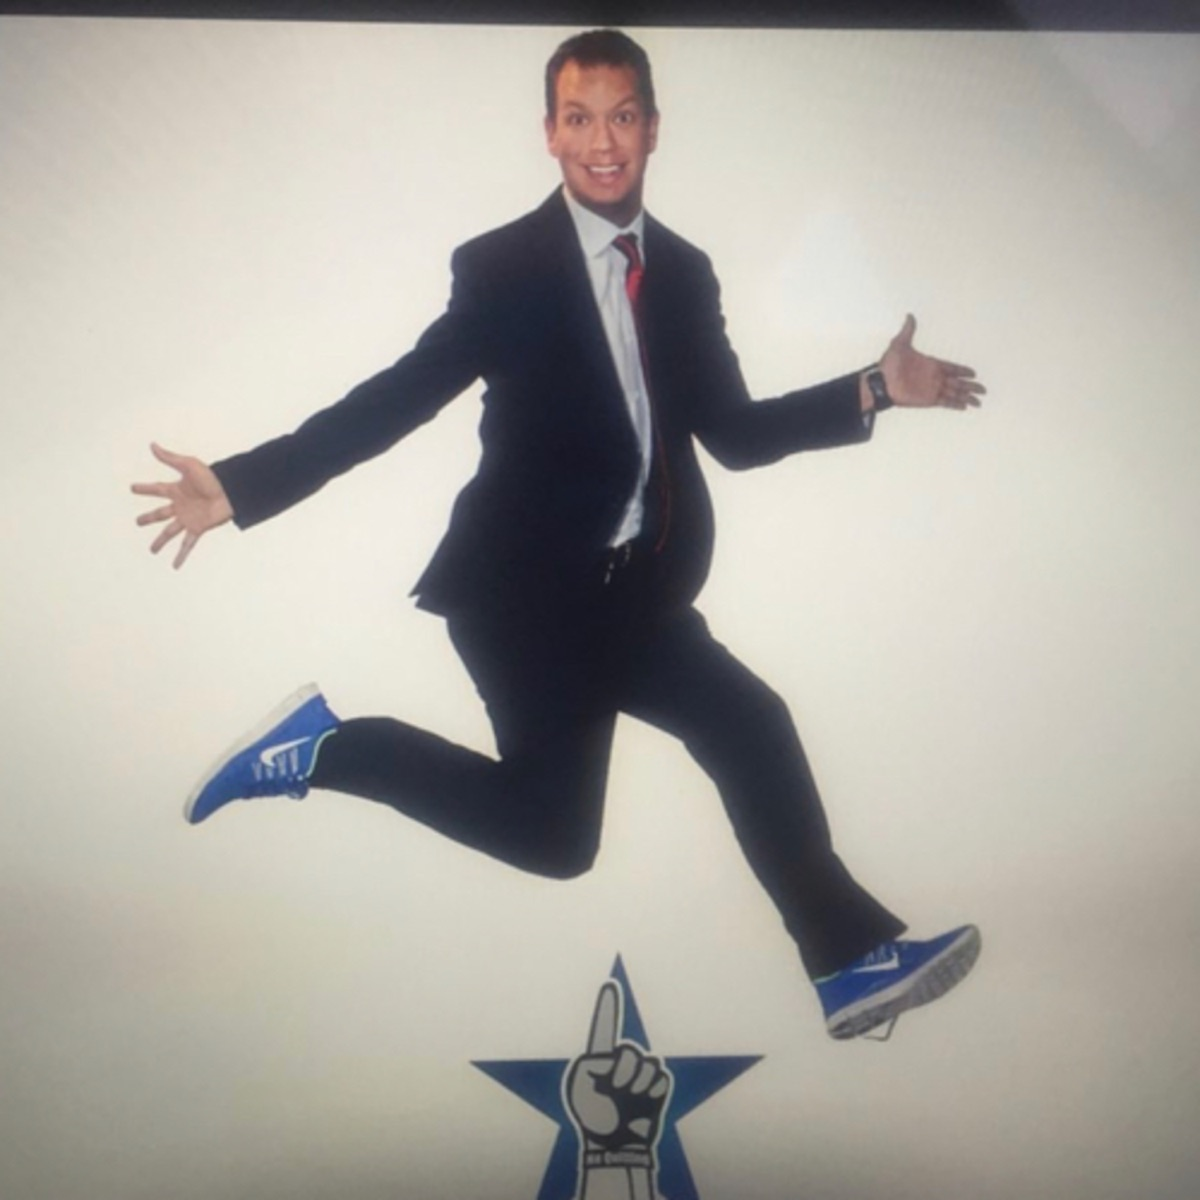 Get Inspired 365 by JT Foxx (In 5 Min or less)